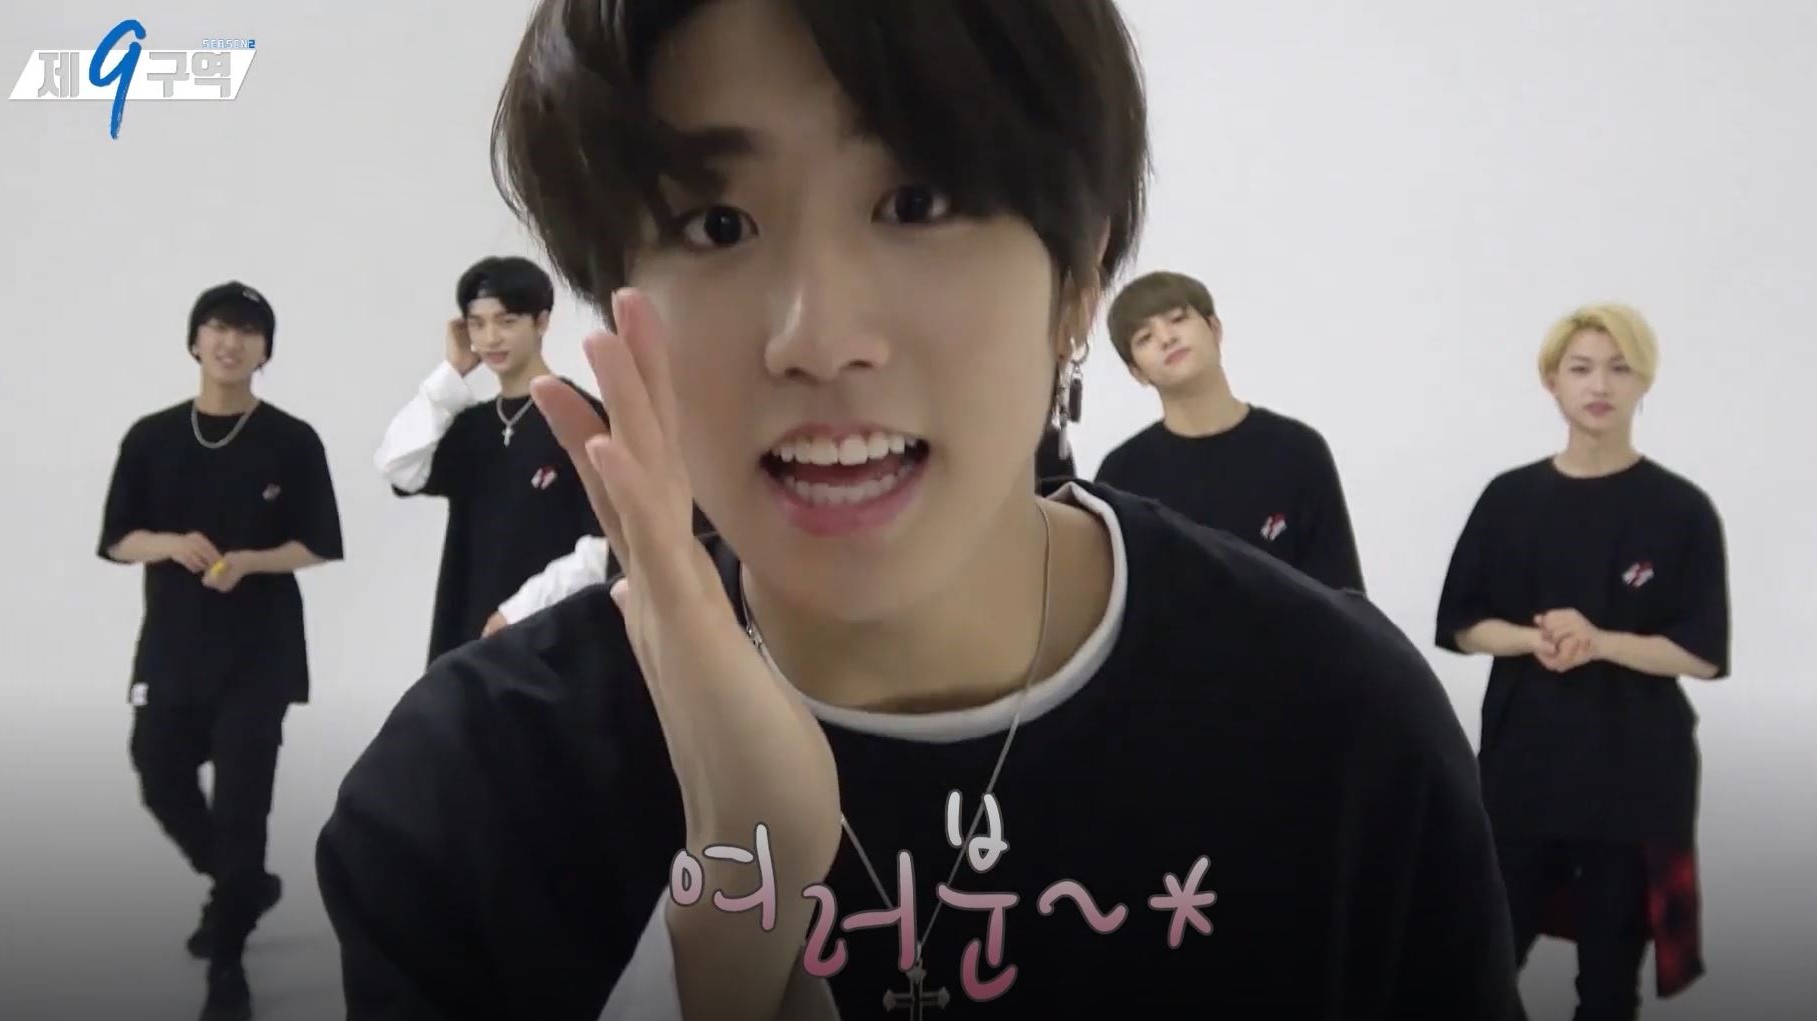 [Stray Kids: 제 9구역 시즌2 (The 9th Season 2)] EP.03